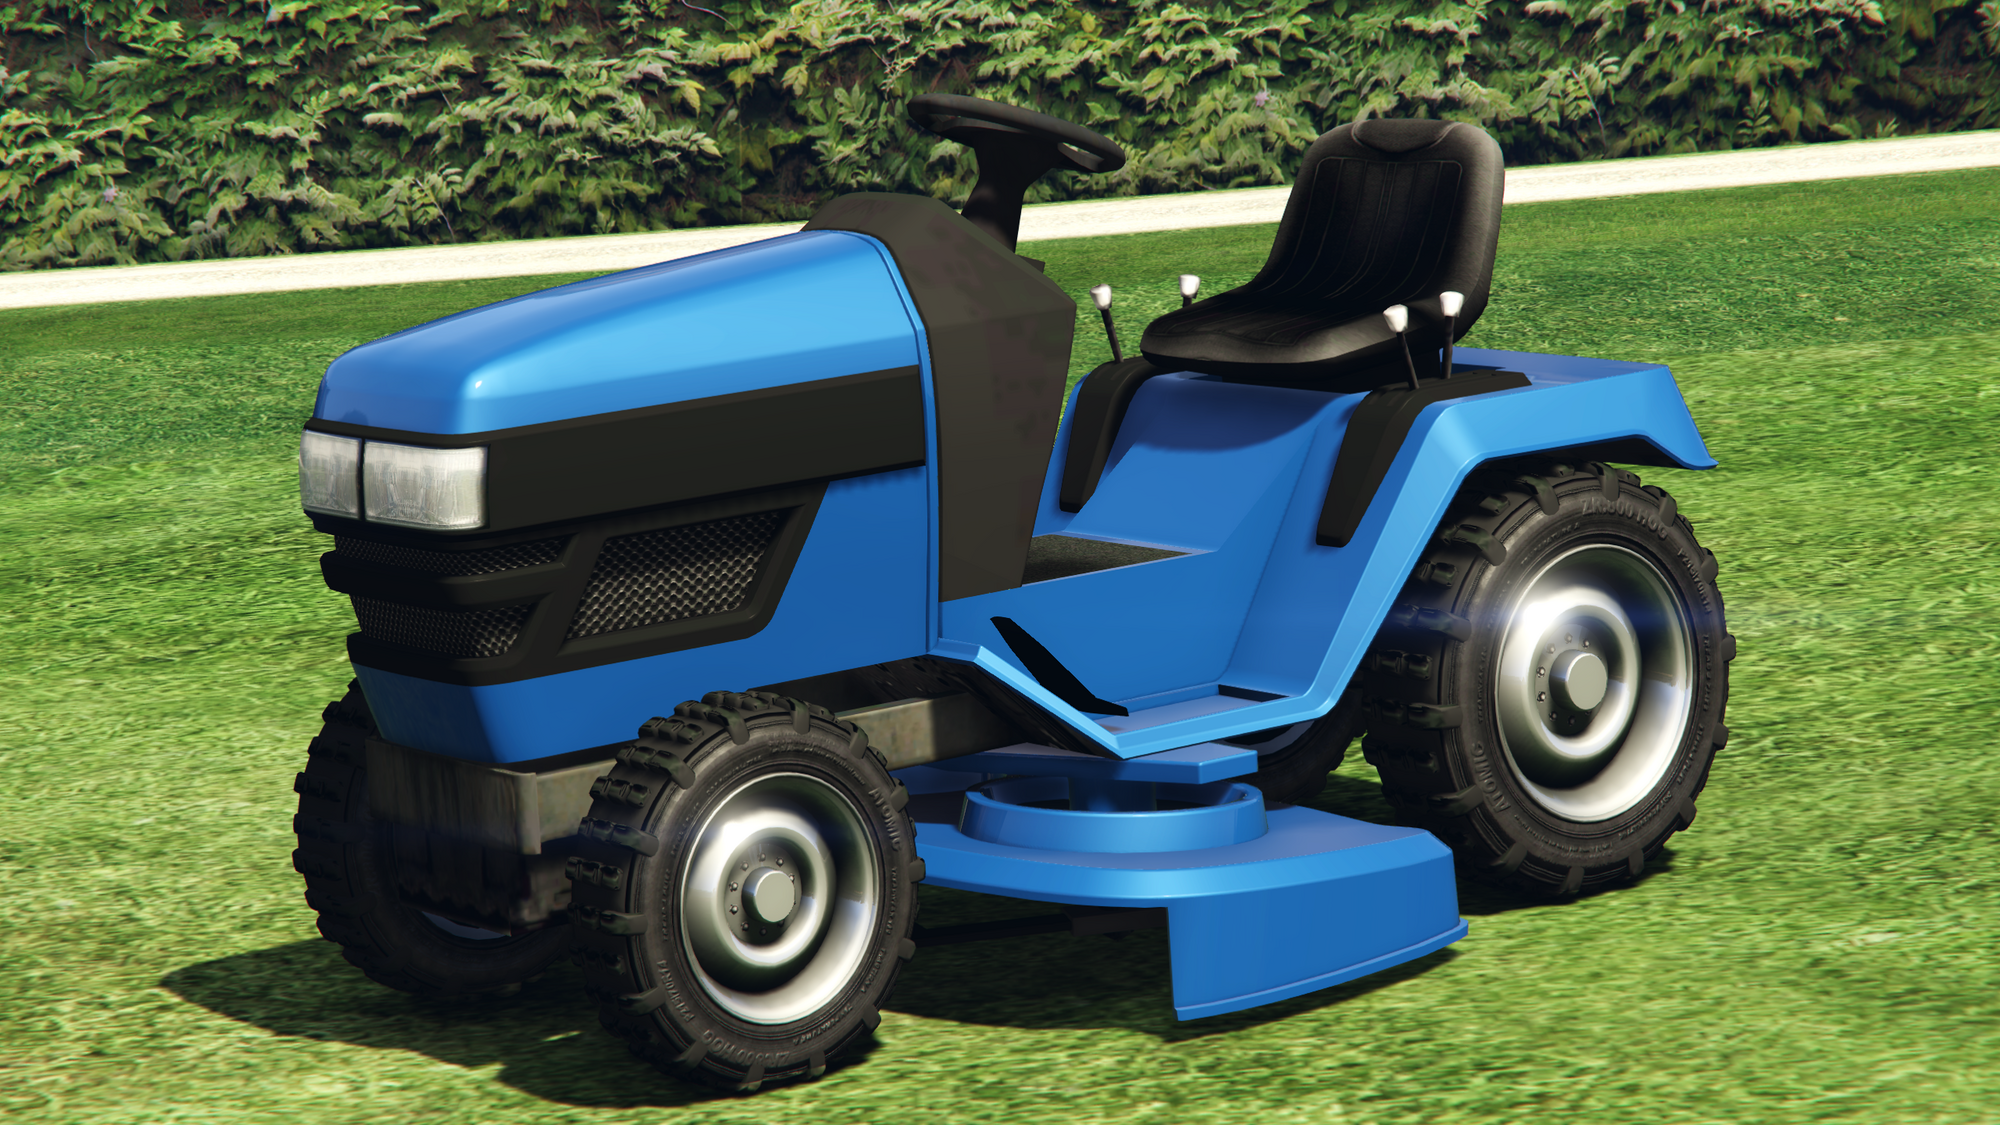 Lawn Mower | GTA Wiki | FANDOM powered by Wikia